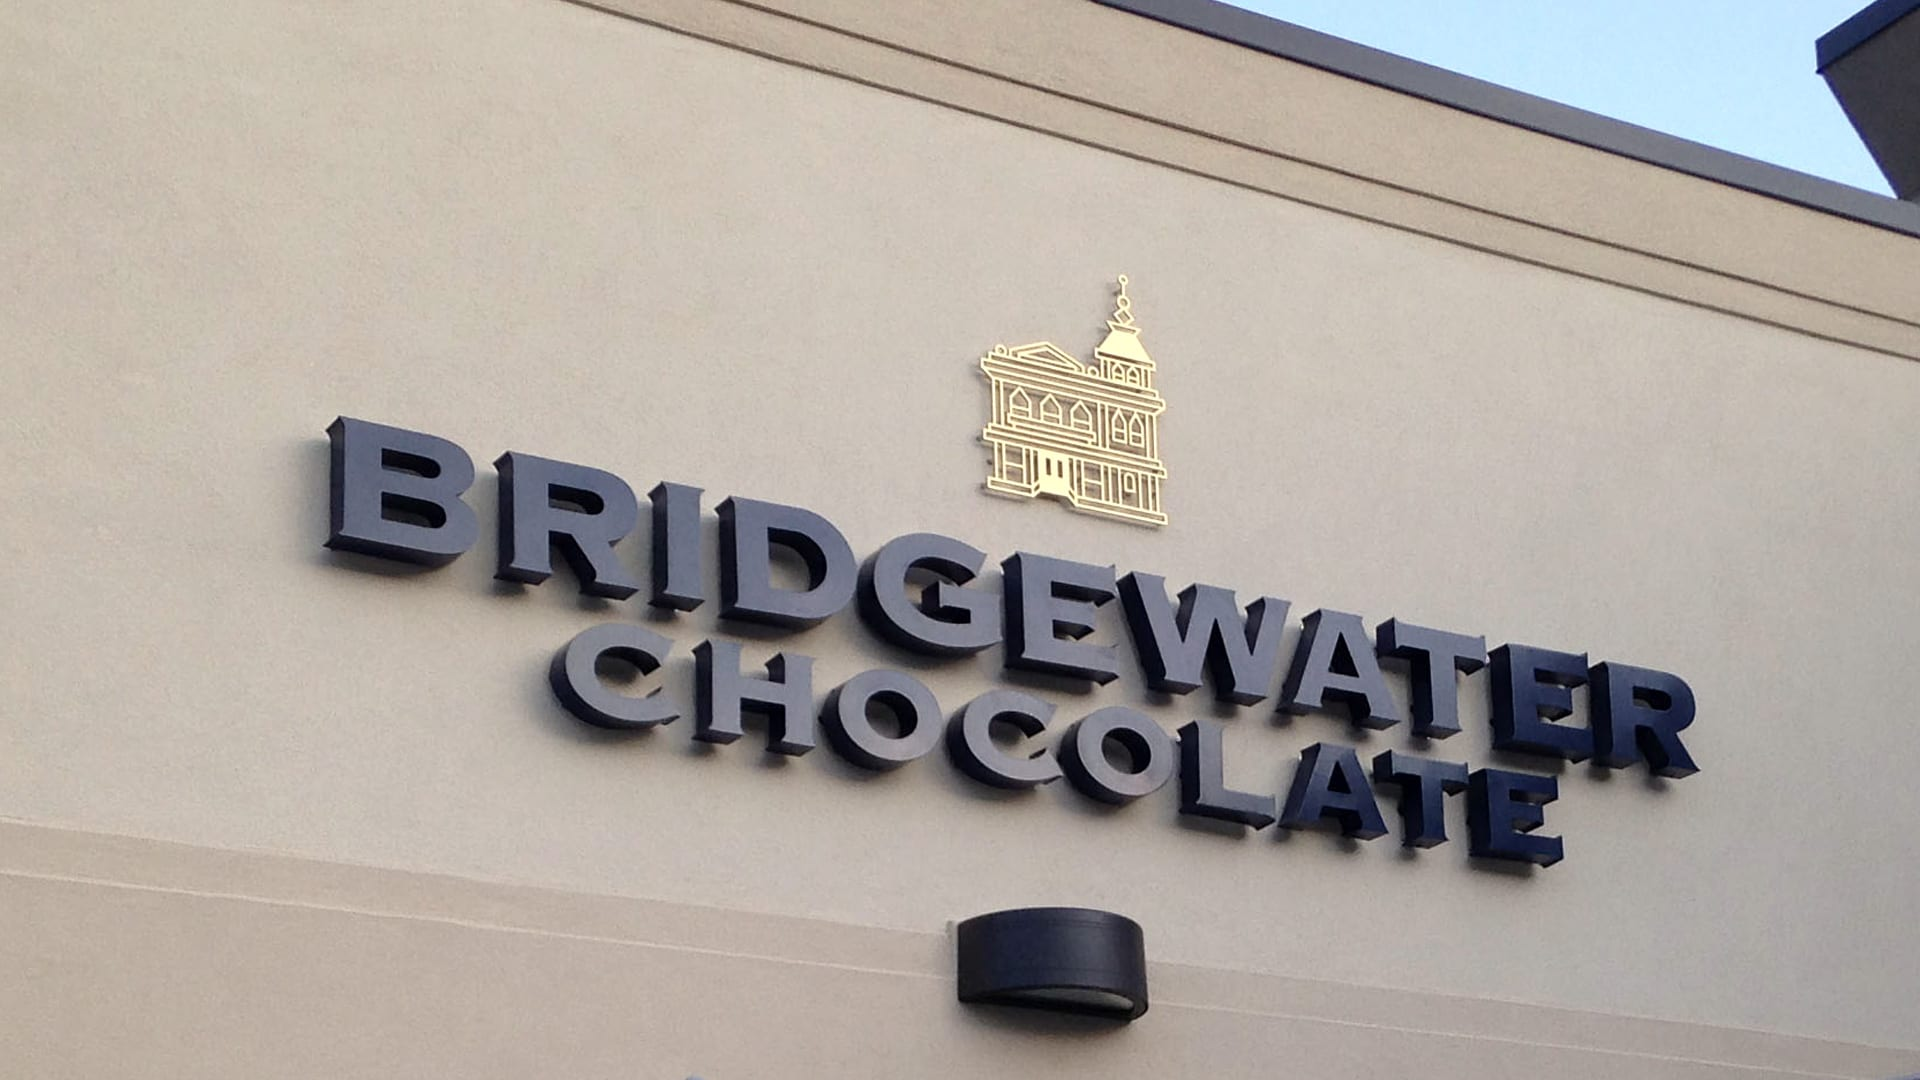 Dimensional Letters - Bridgewater Chocolate